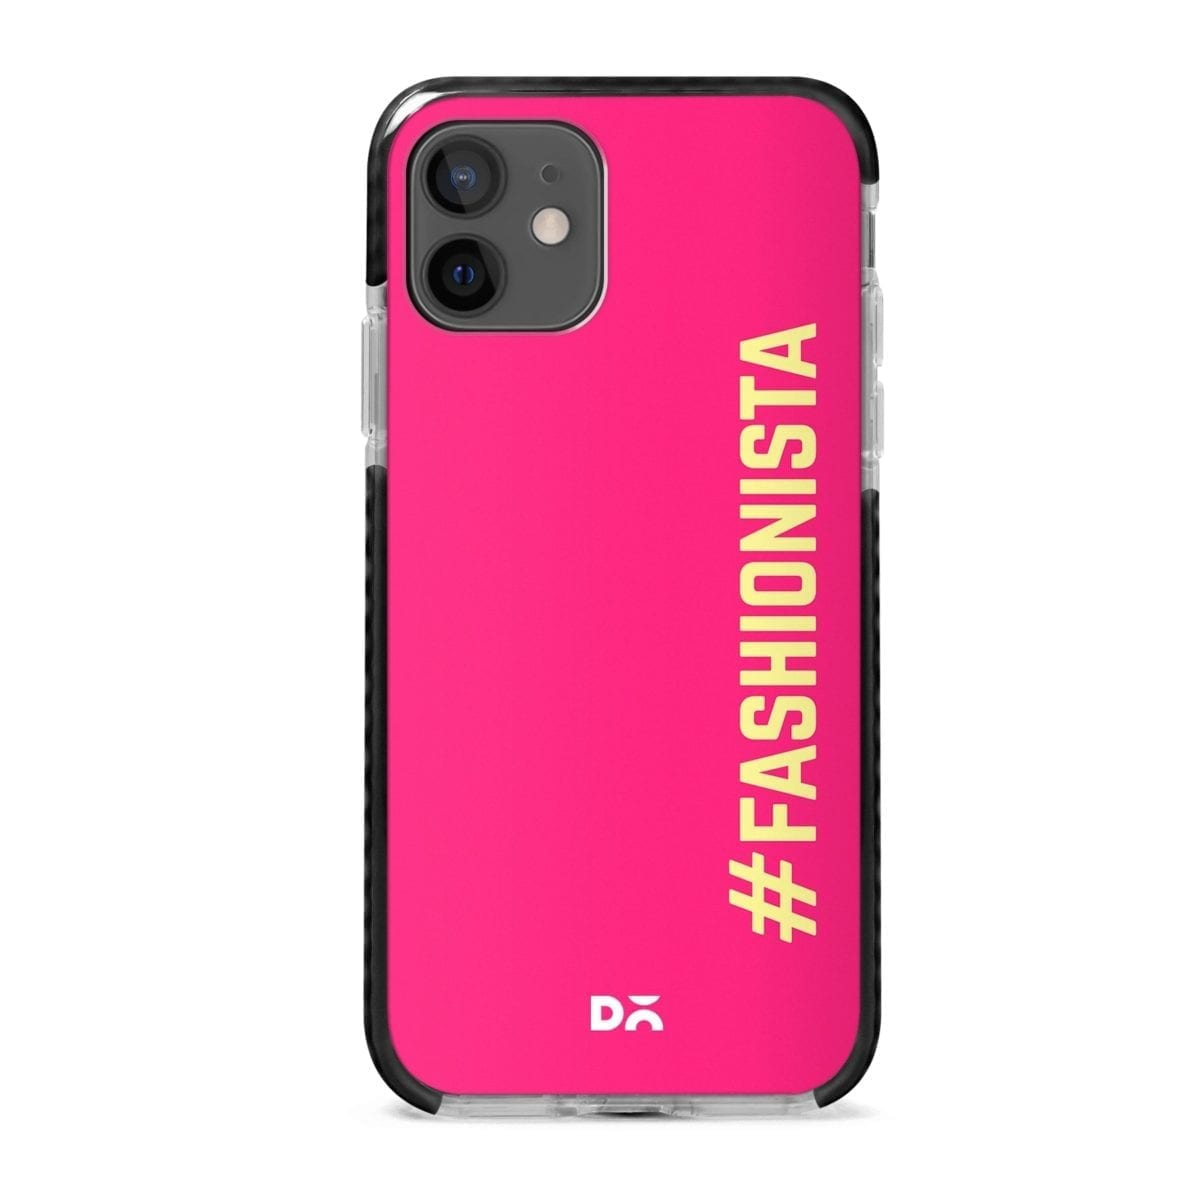 Fashionista Case Cover for Apple iPhone 12 Mini and Apple iPhone 12 with great design and shock proof | Klippik | Online Shopping | Kuwait UAE Saudi